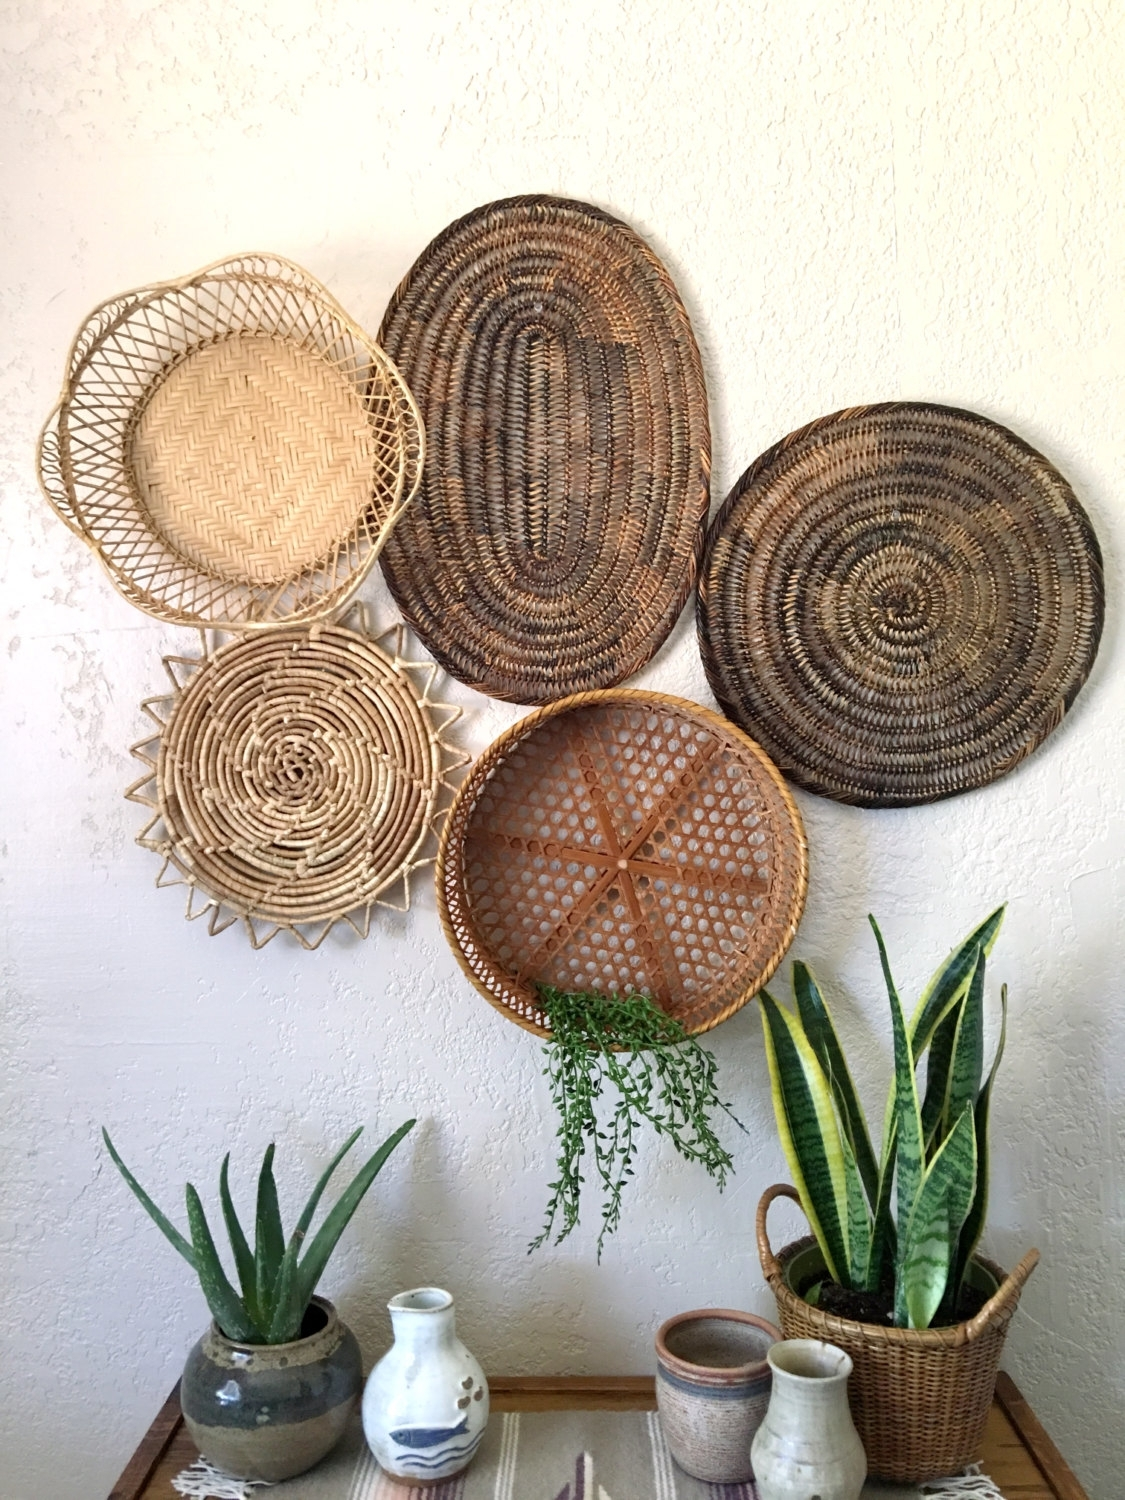 Vintage Oval Brown Woven Wicker Basket / Trivet / Placemat, Woven With Most Popular Woven Basket Wall Art (View 15 of 20)